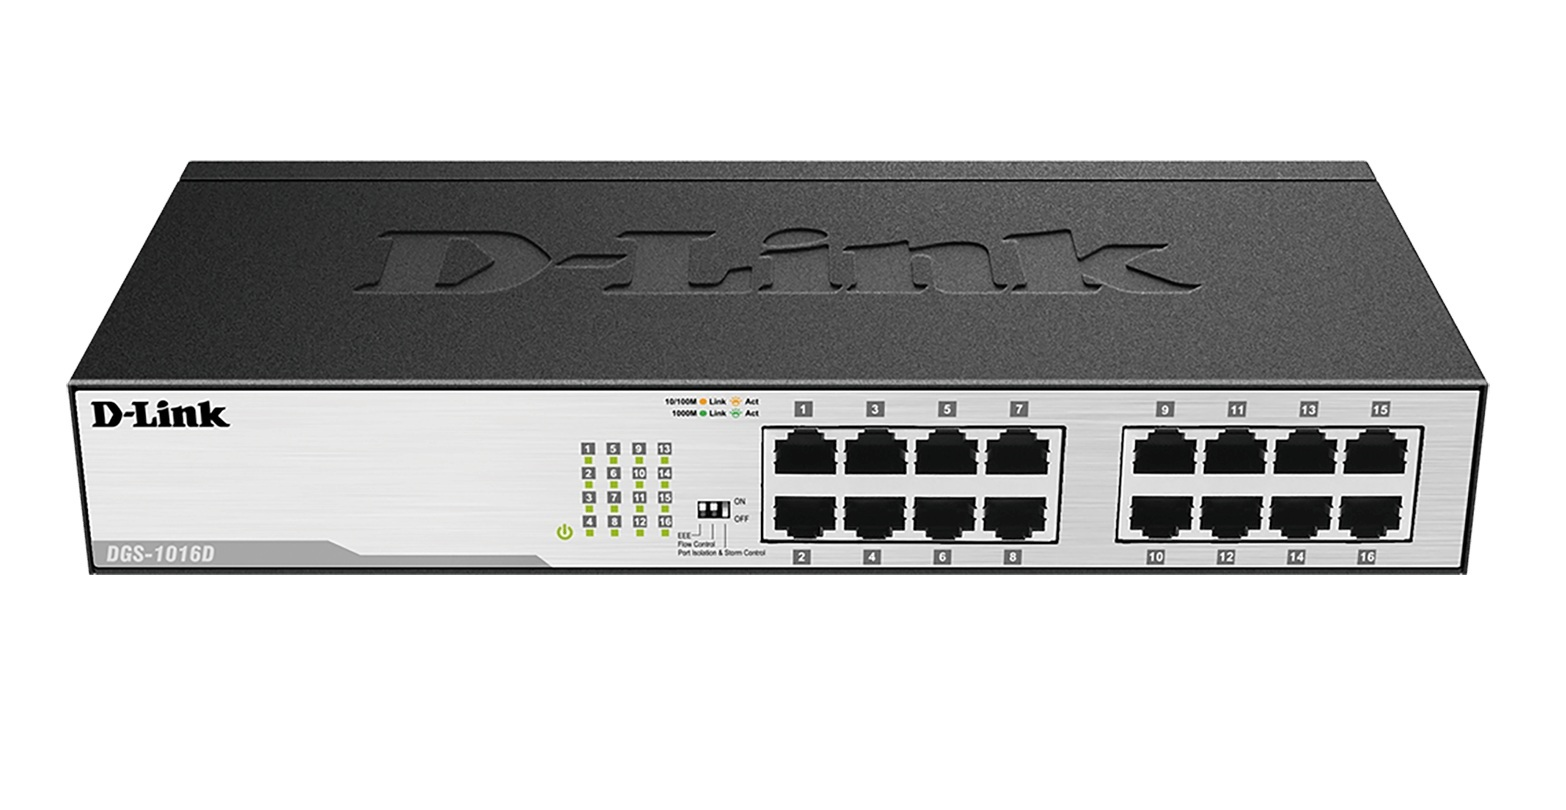 D-Link DGS-1016D Networking Switch